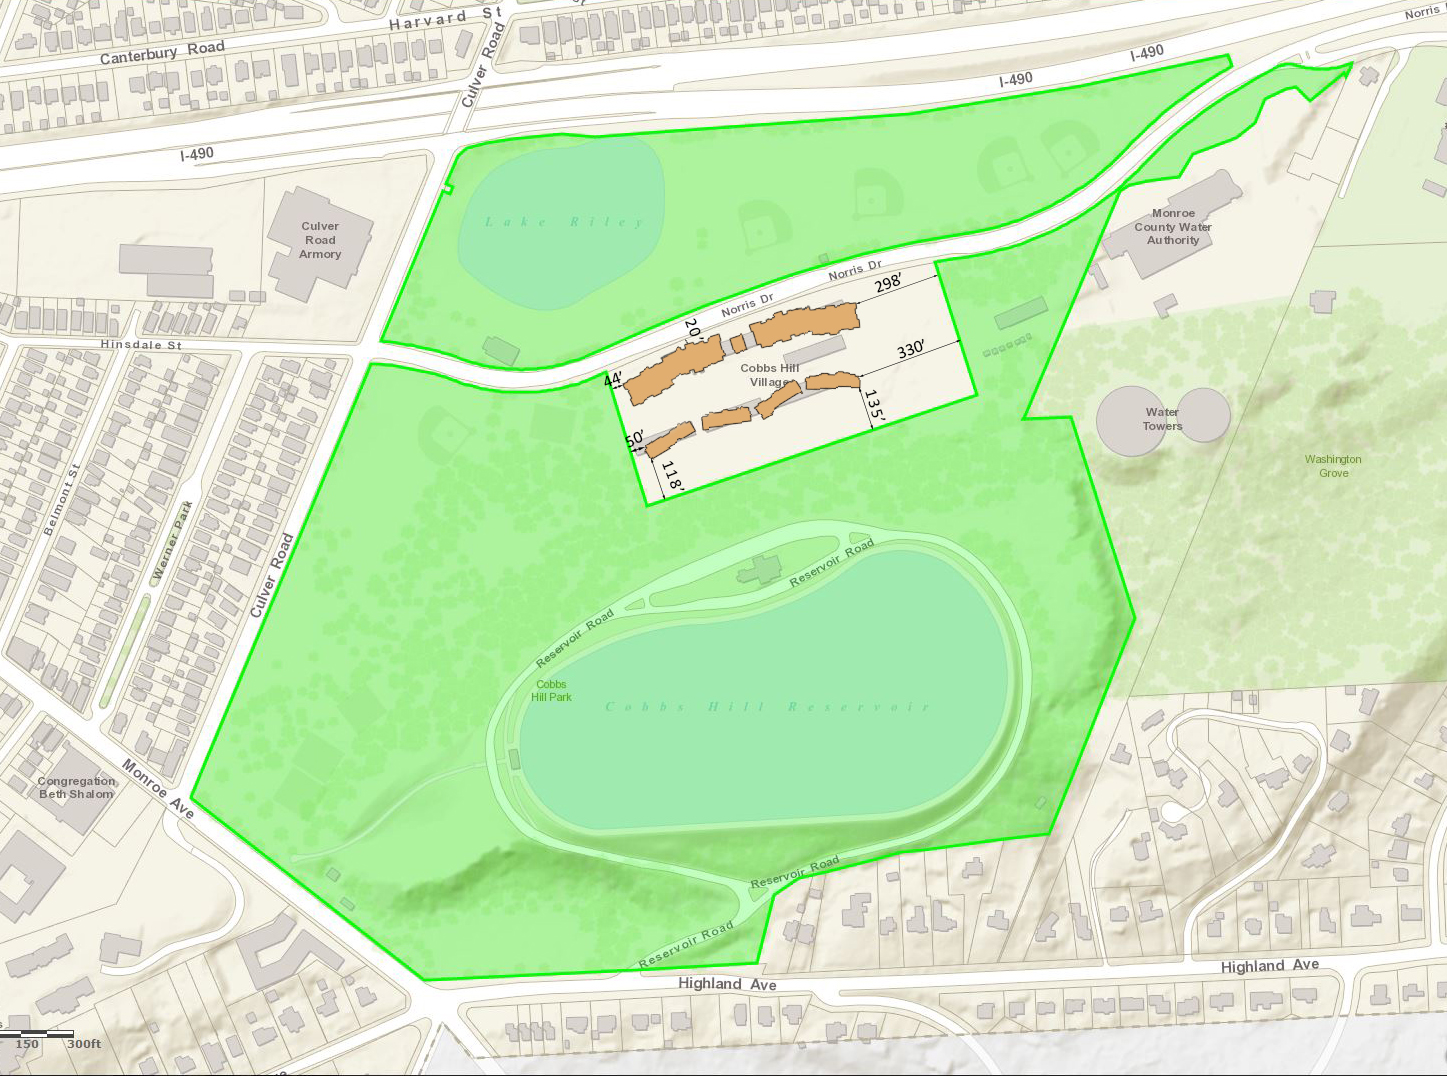 Revised Cobbs Hill Site Plan 4 4 2018